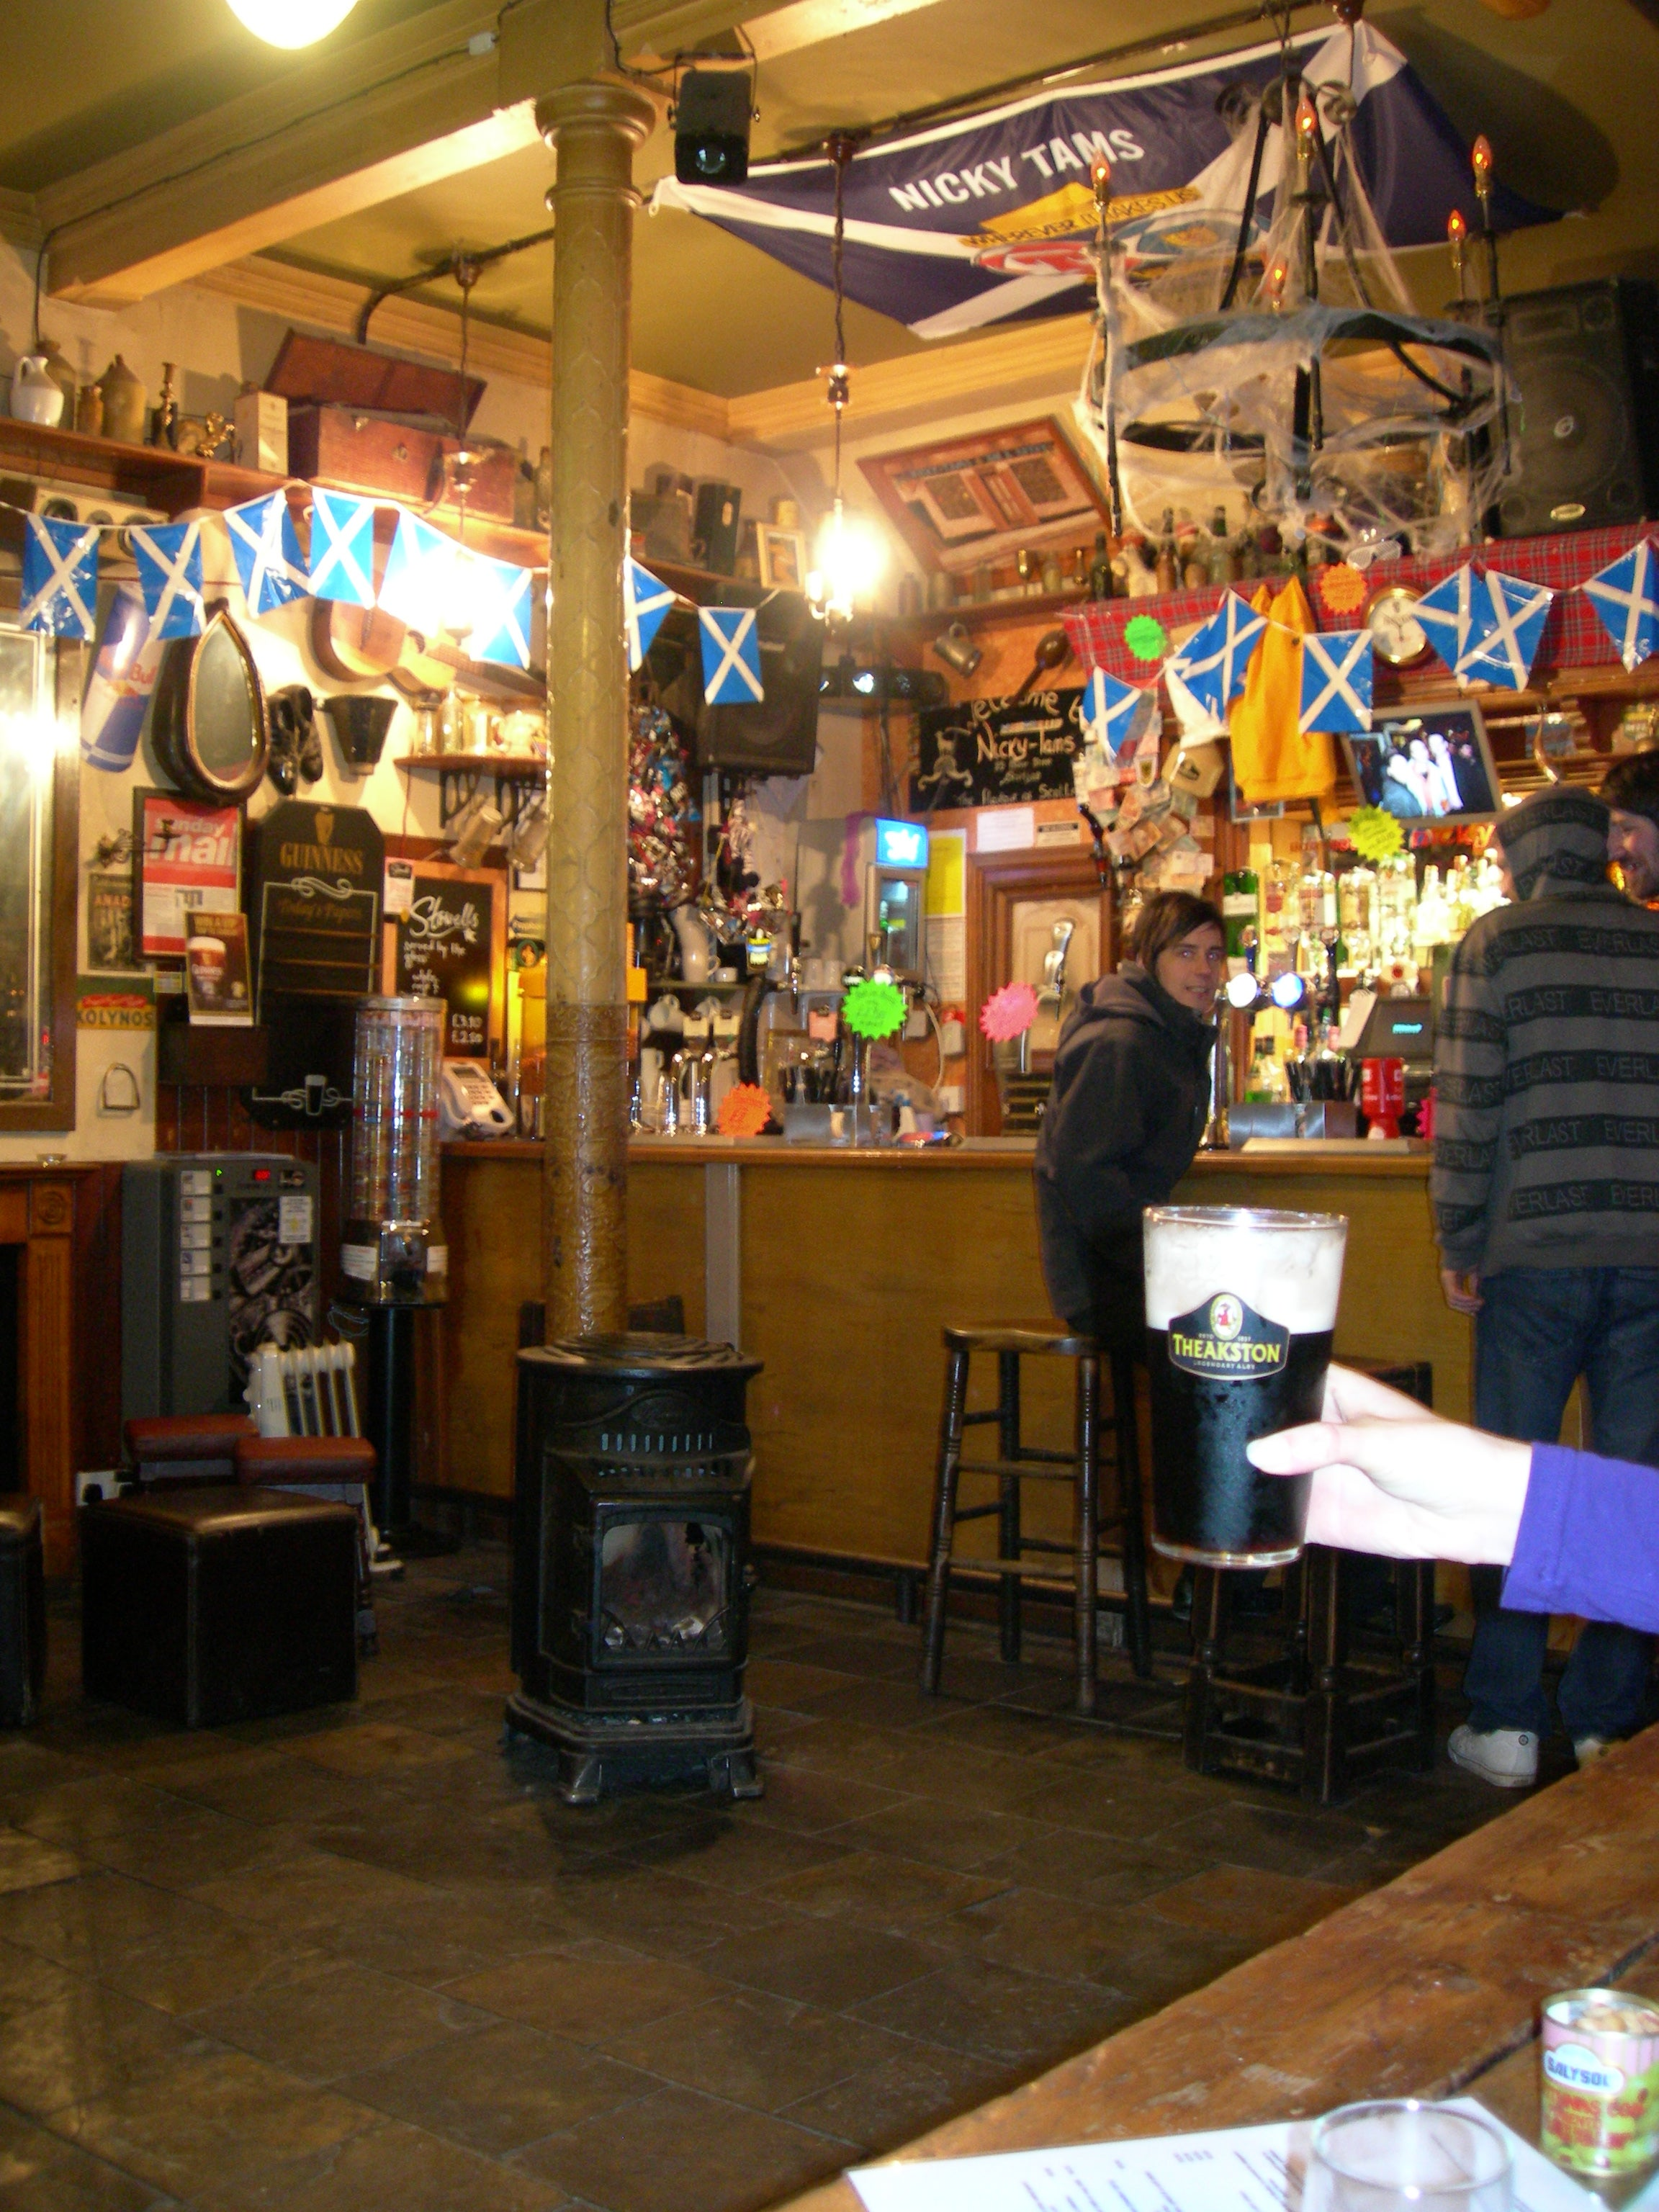 Restaurante en Nicky Tams Bar and Bouthy